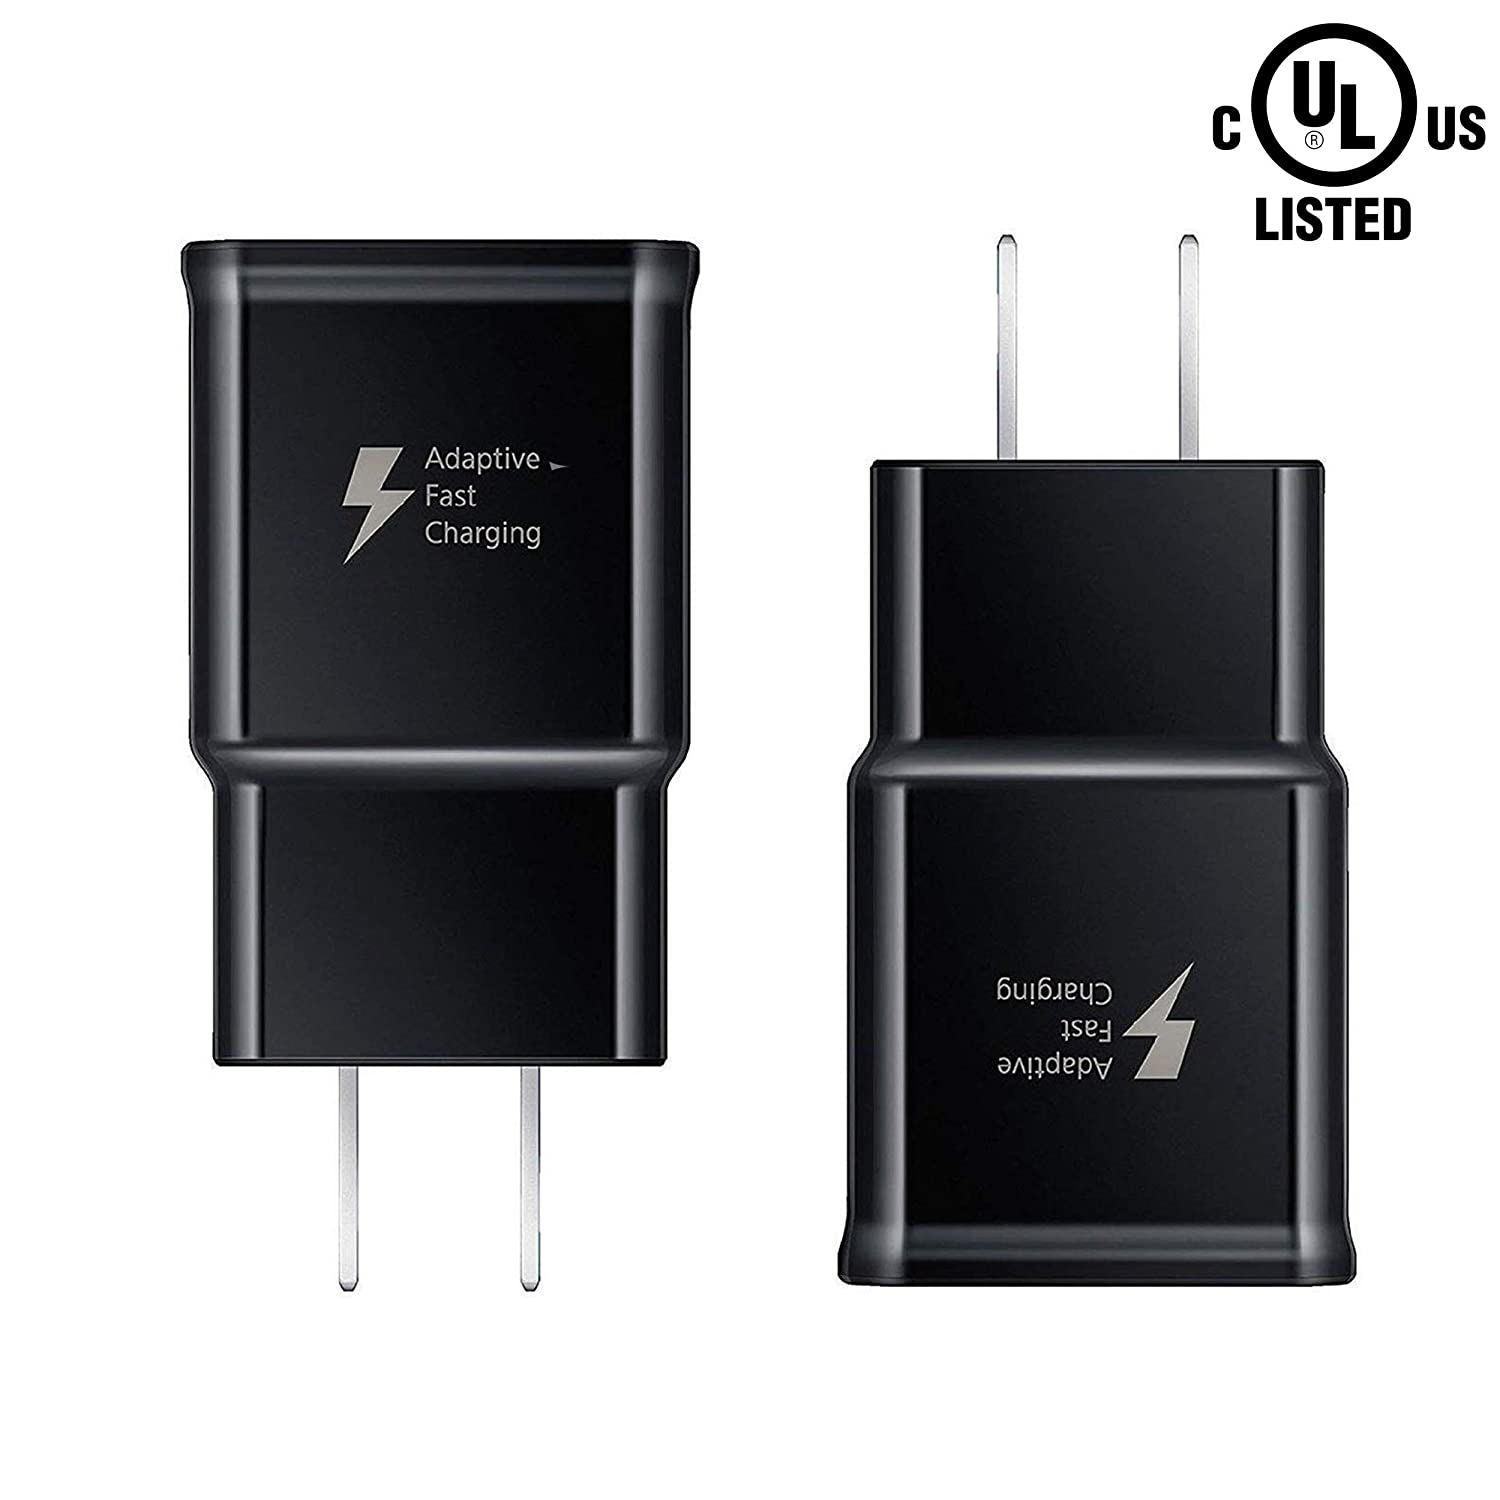 Pantom [2-Pack] Adaptive Fast Charging Rapid Quick Charge Wall Charger Compatible with Samsung Galaxy S10/S10+/S9/S9+/S8/S8+ Note 8/Note 9 & Other ...